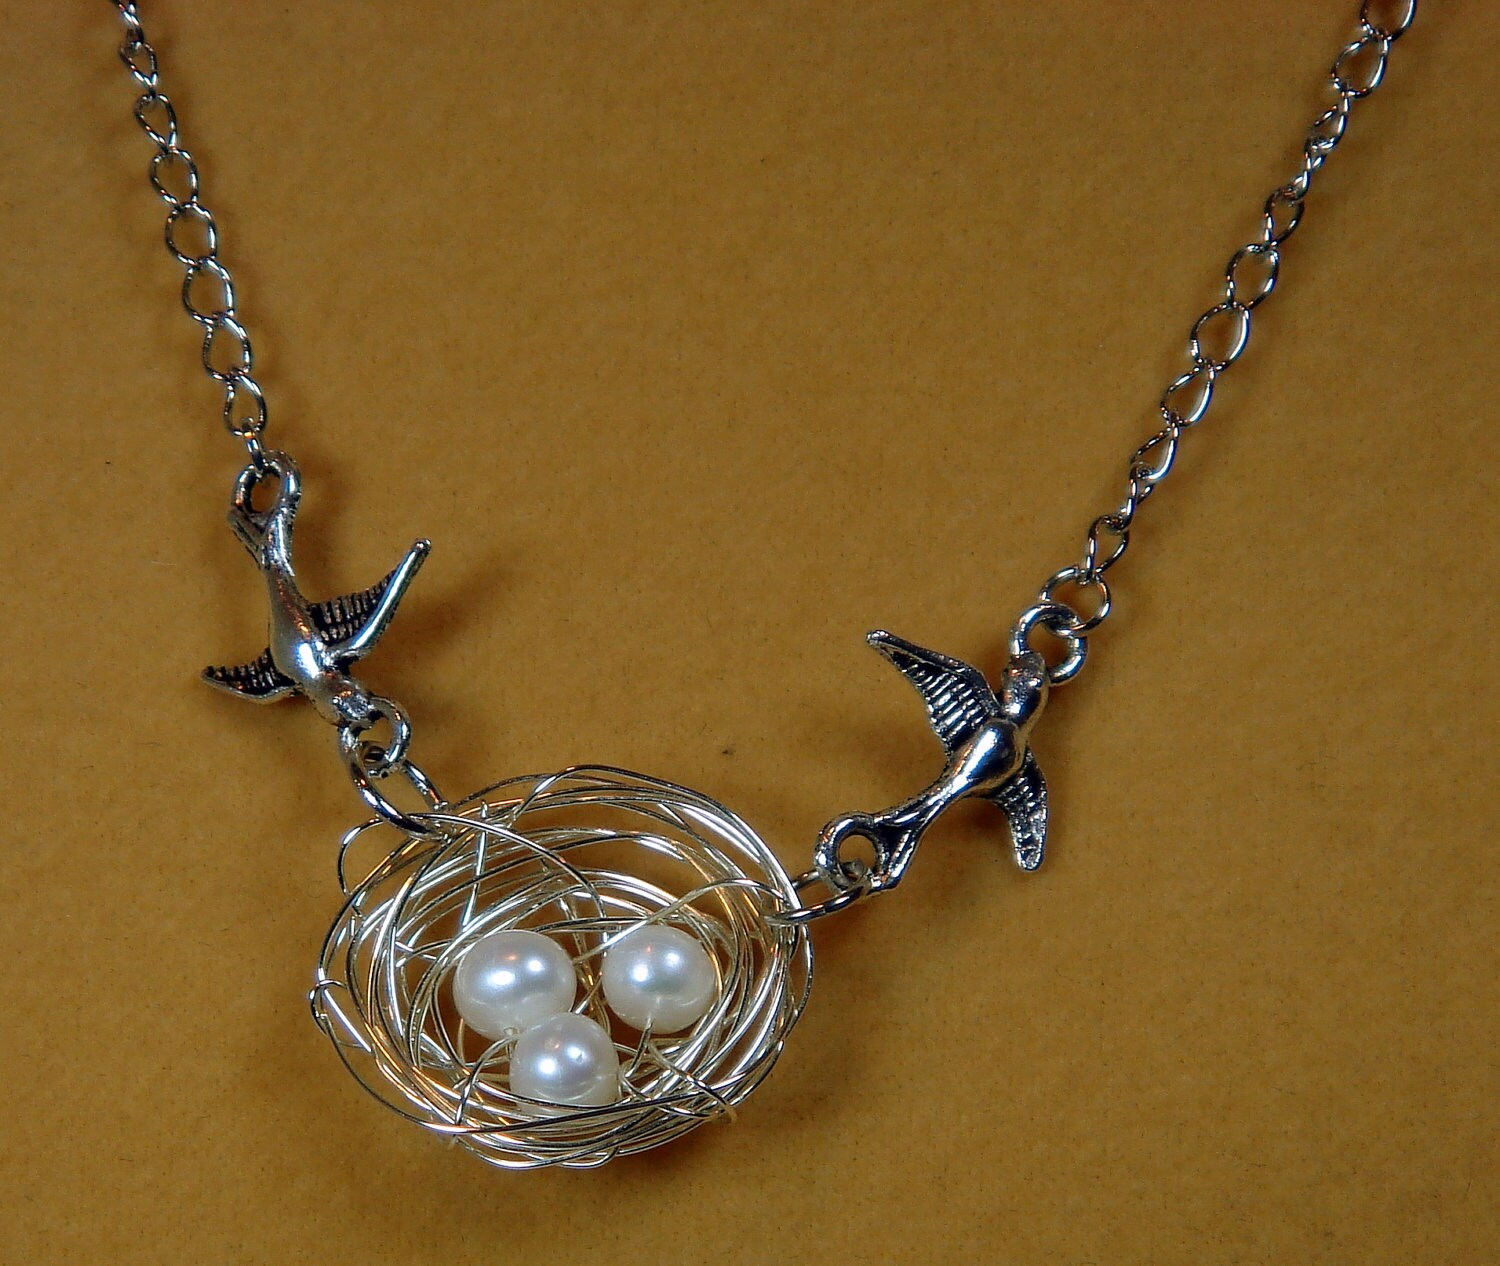 nest necklace pearlsswallows in the nest necklace freshwater